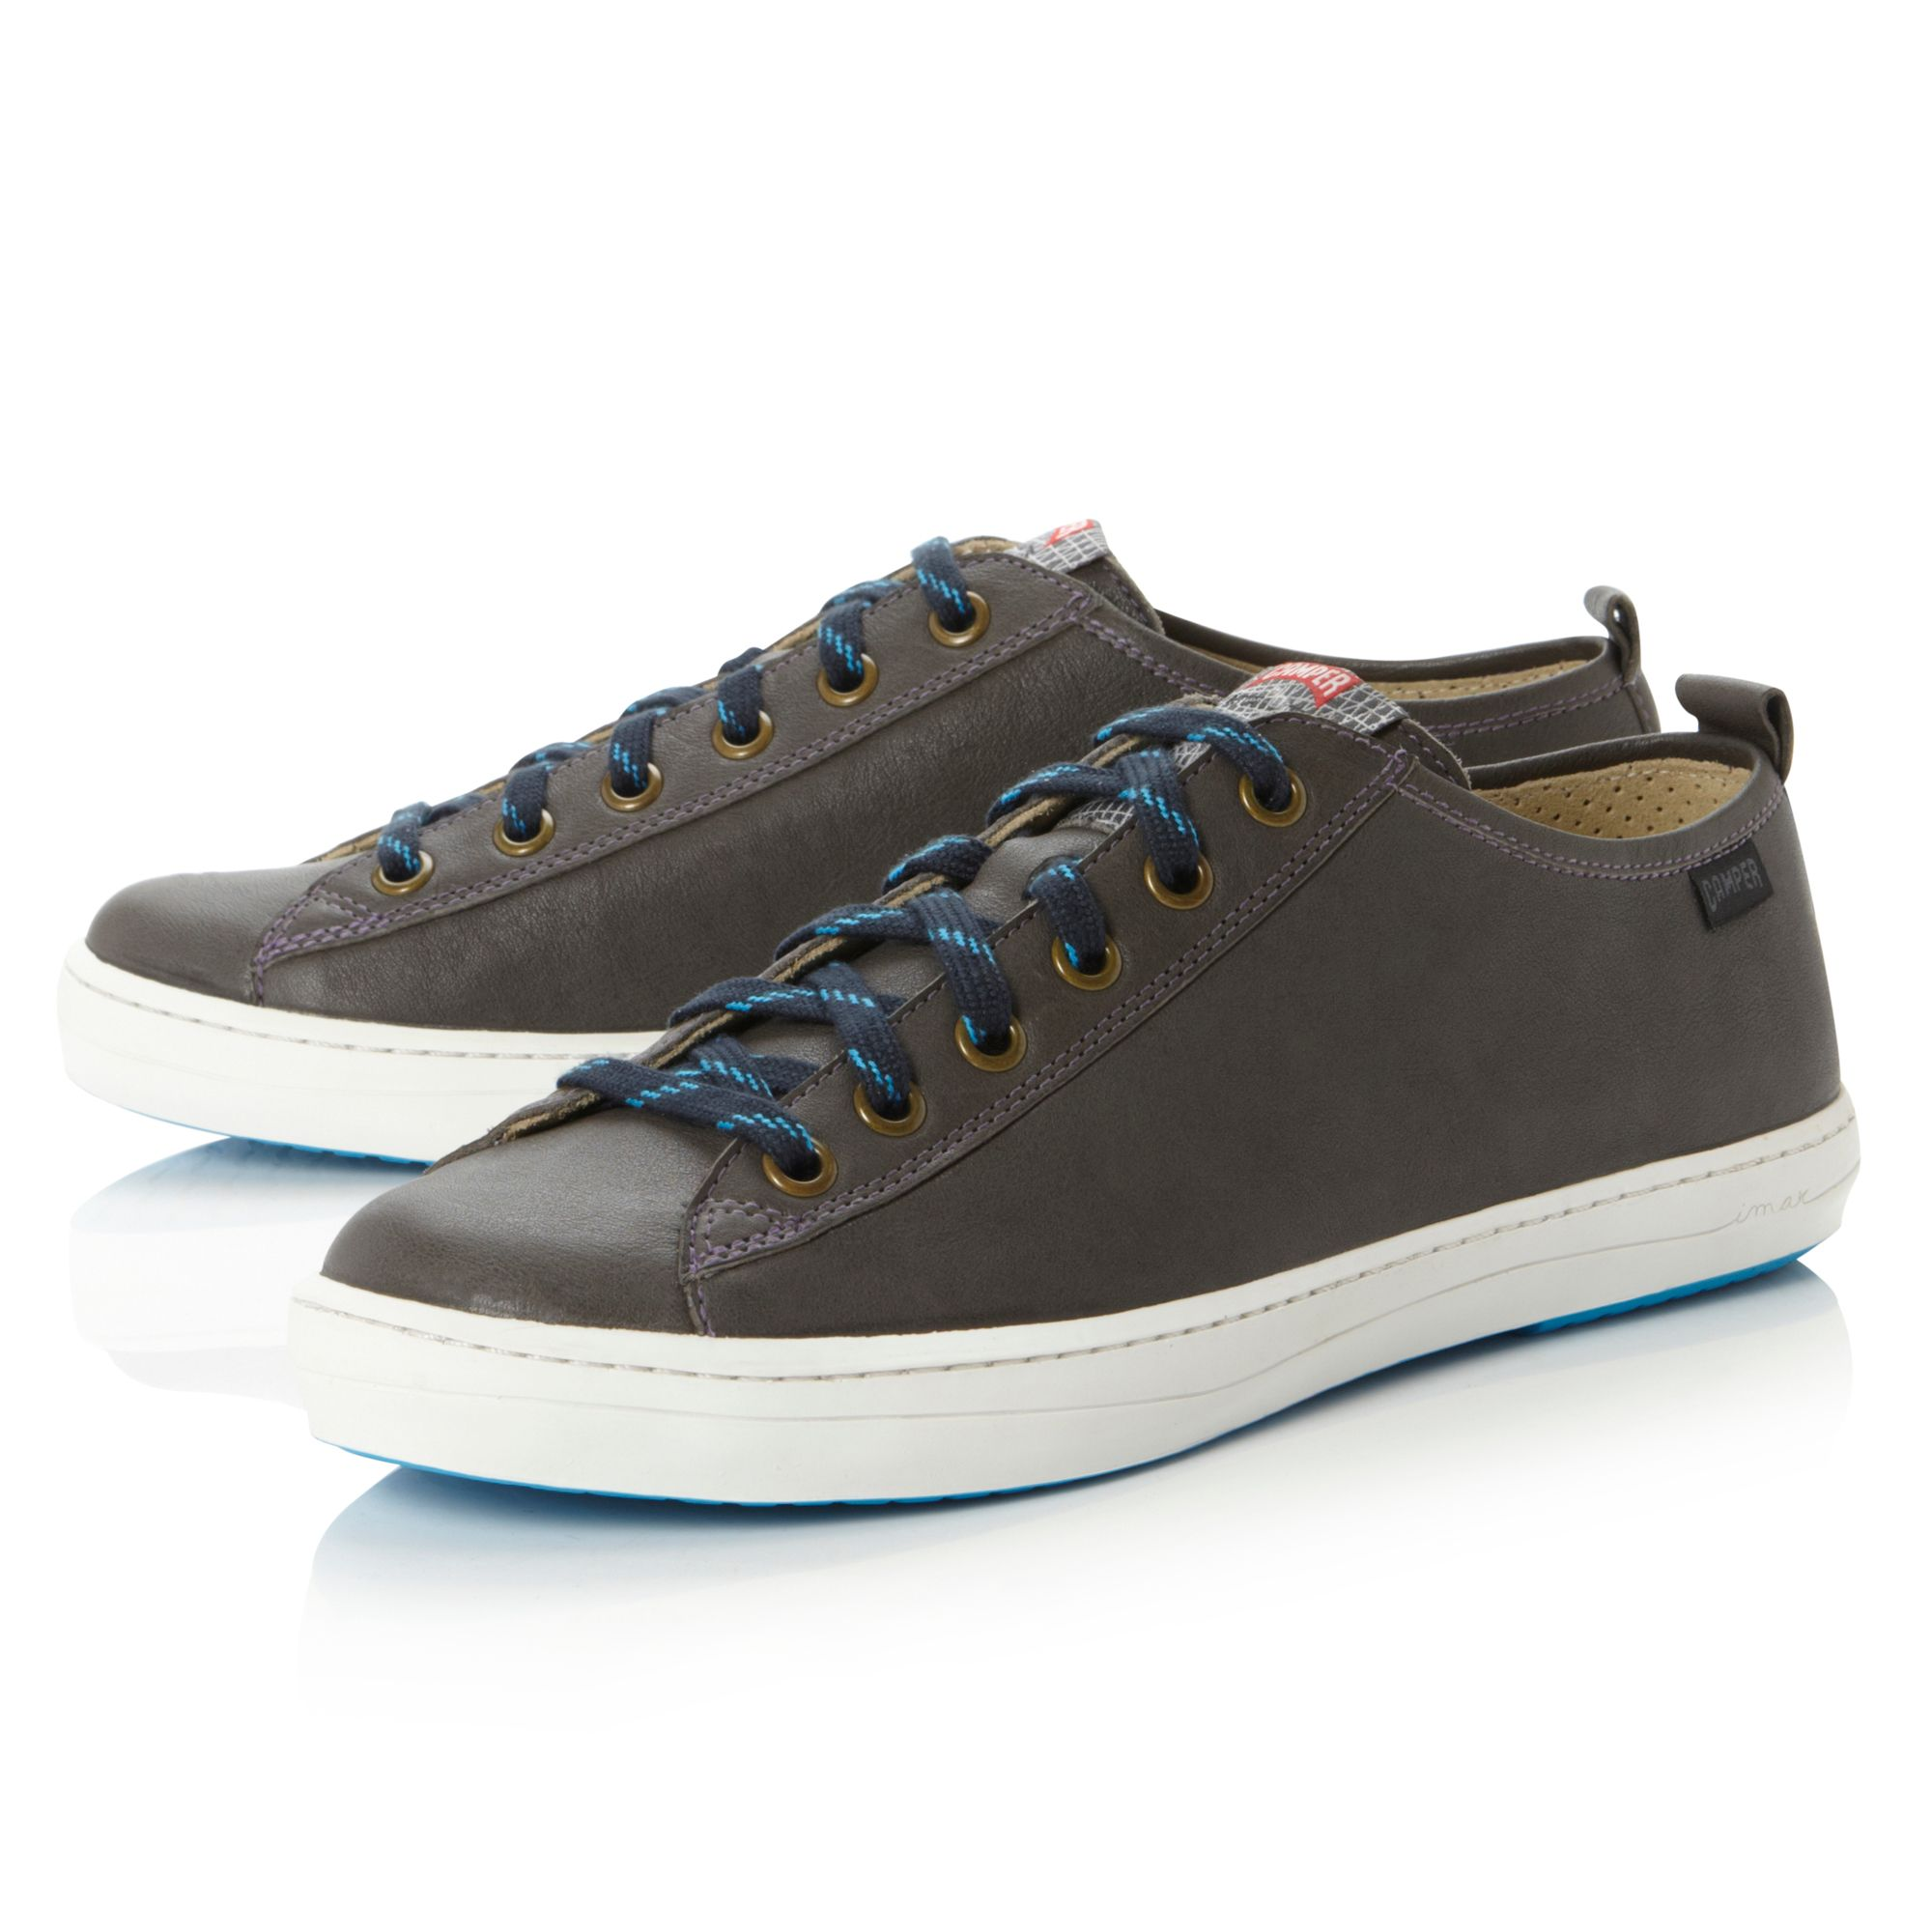 Camper Imar Hiker Lace Trainers in Navy (Grey) for Men